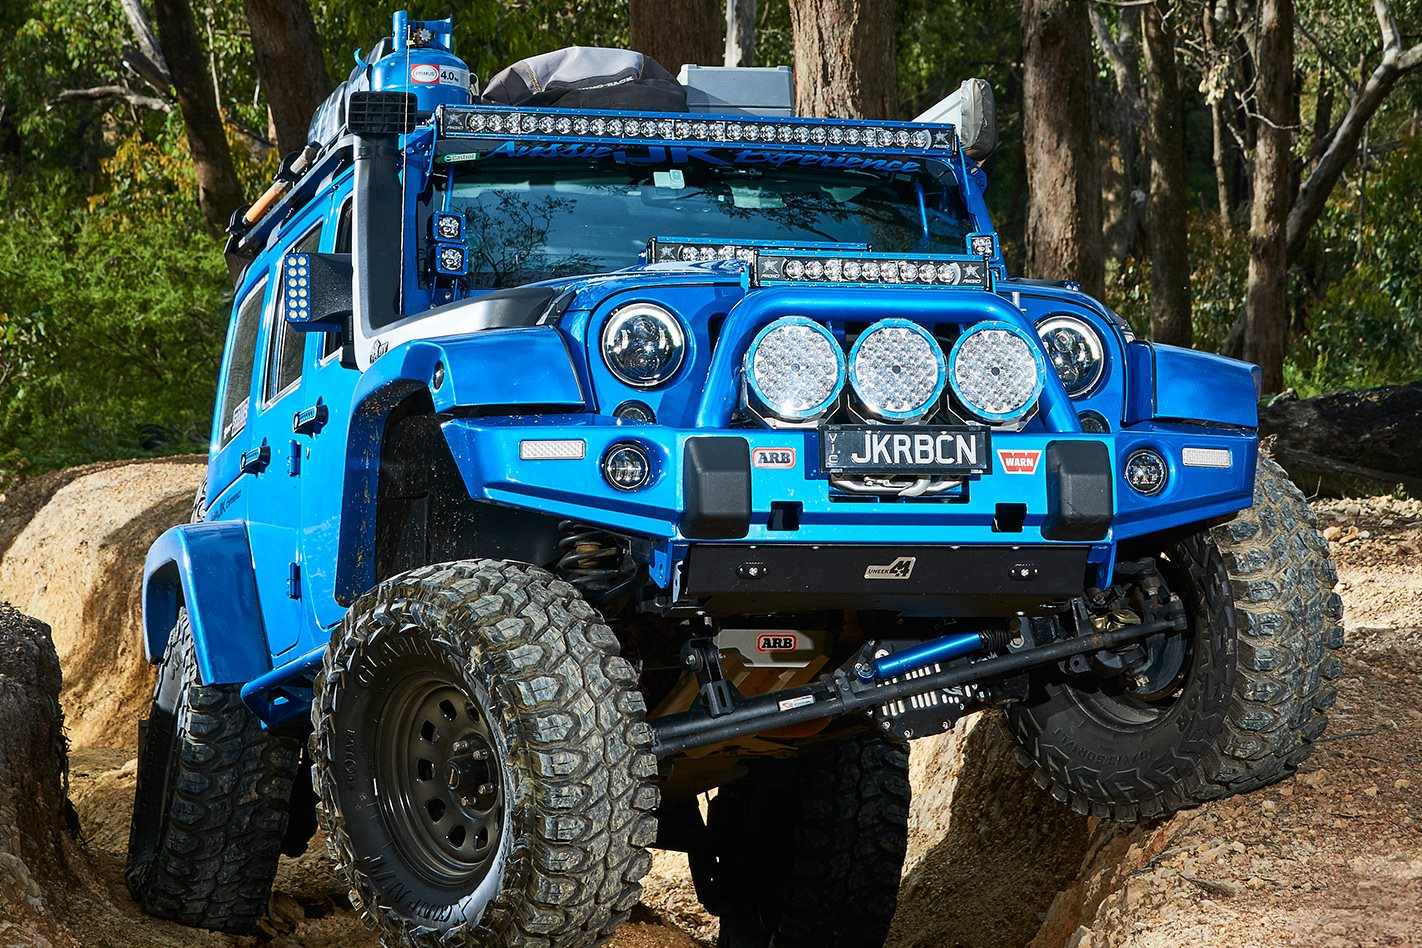 Supercharged-JKU-Jeep-Wrangler-Rubicon-axles.jpg